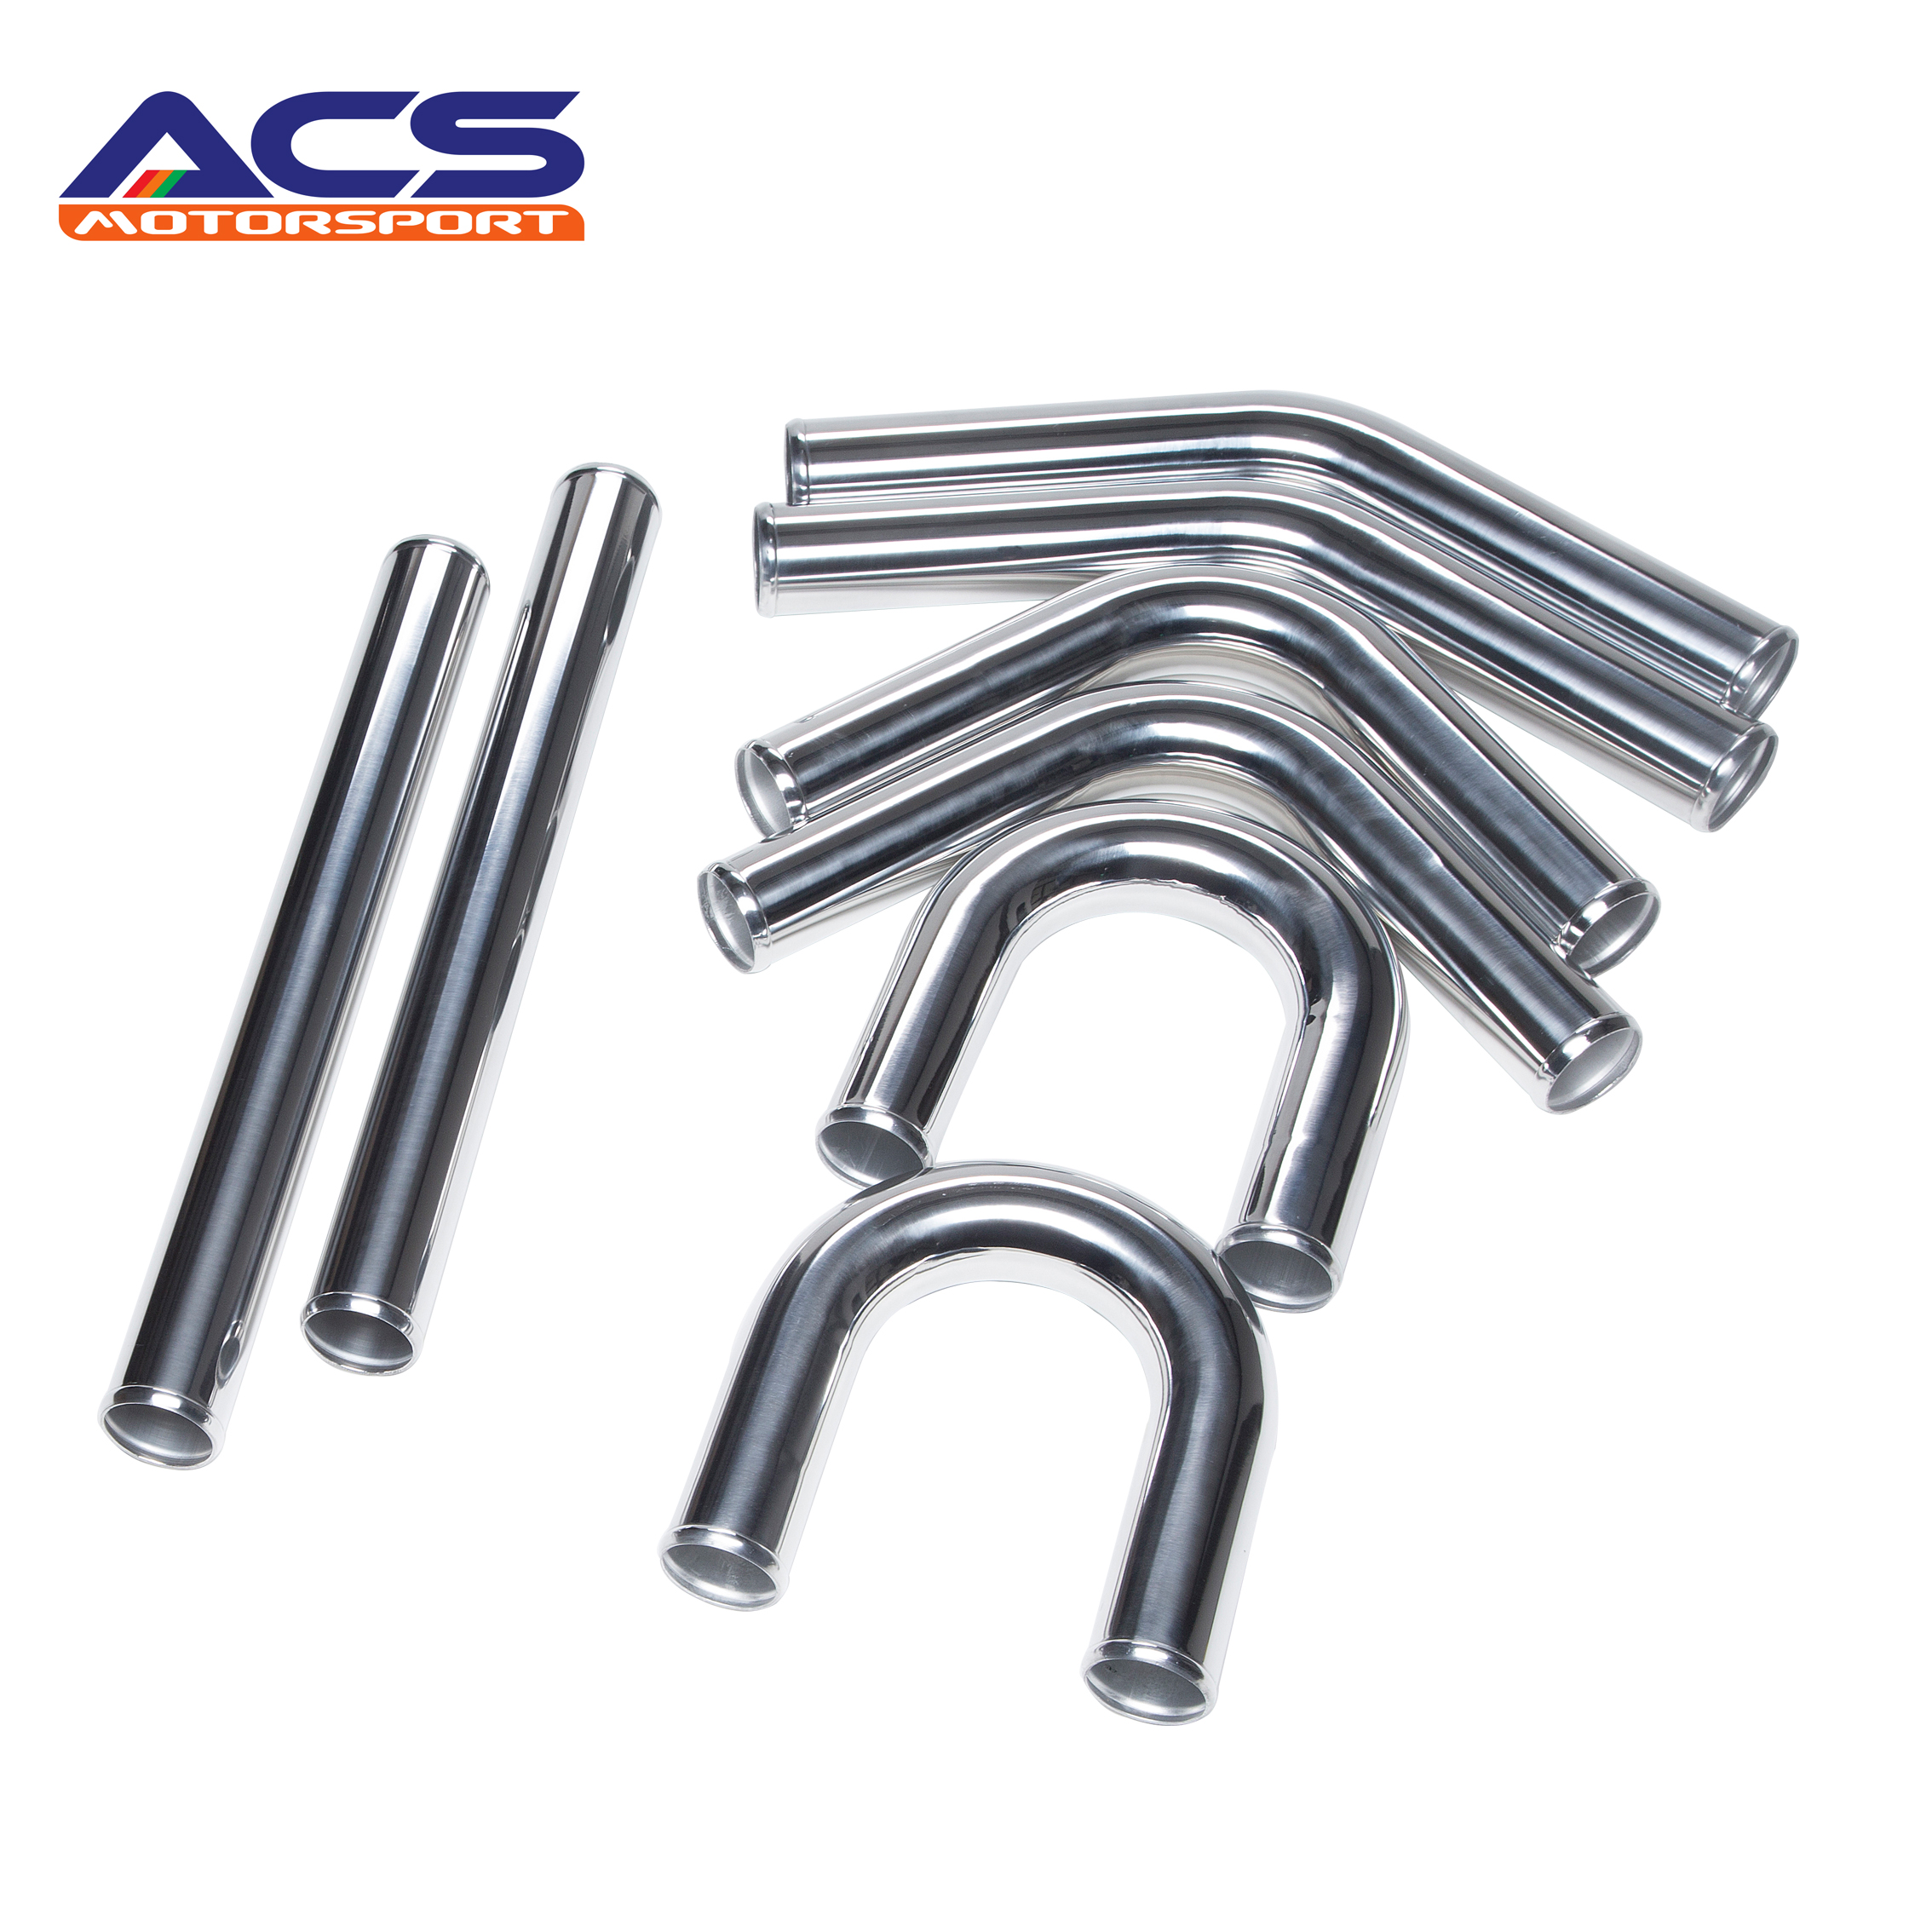 Universal Polished 2.5'' Aluminum FMIC Intercooler Piping Kit DIY Piping 600mm Length